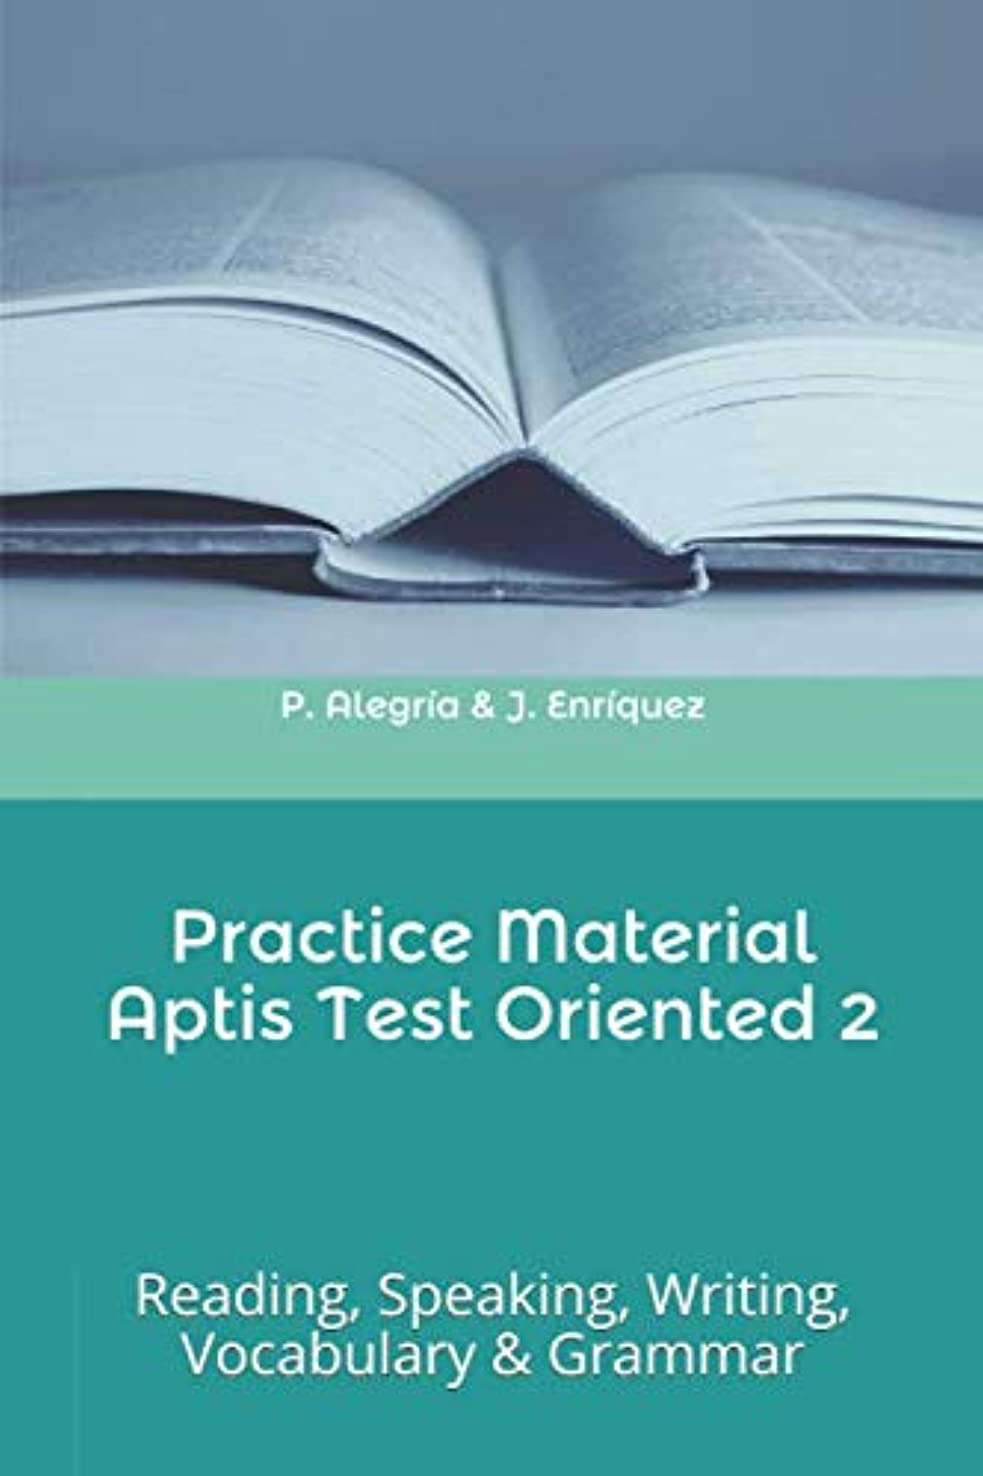 削除するヒステリック番号Practice Material Aptis Test Oriented 2: Reading, Speaking, Writing, Vocabulary & Grammar (APTIS oriented practice material)